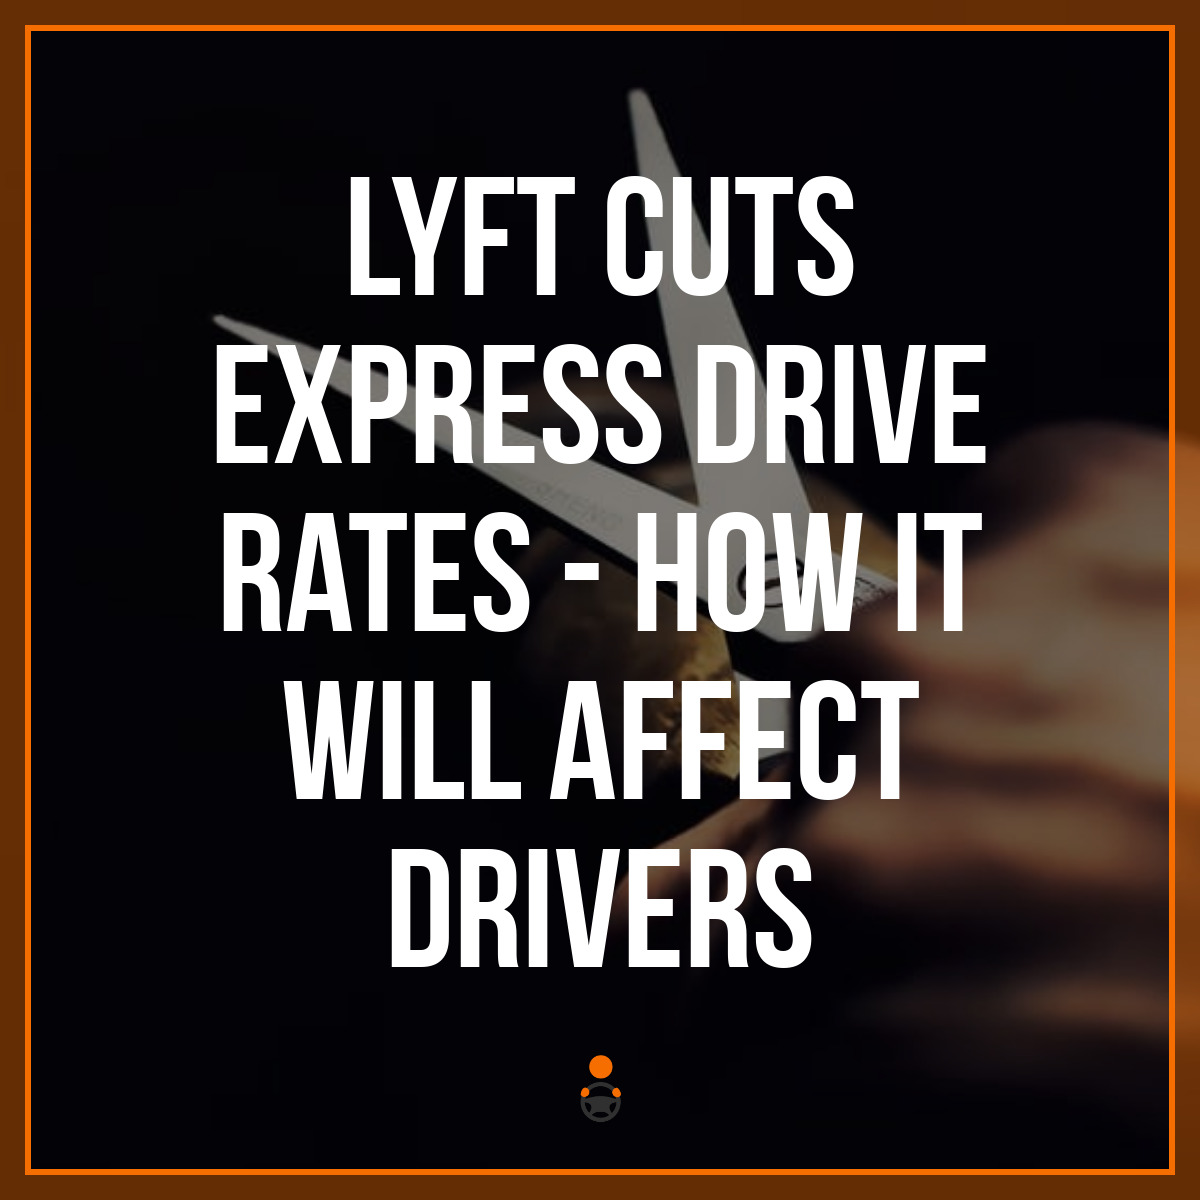 Lyft Cuts Express Drive Rates – How it Will Affect Drivers